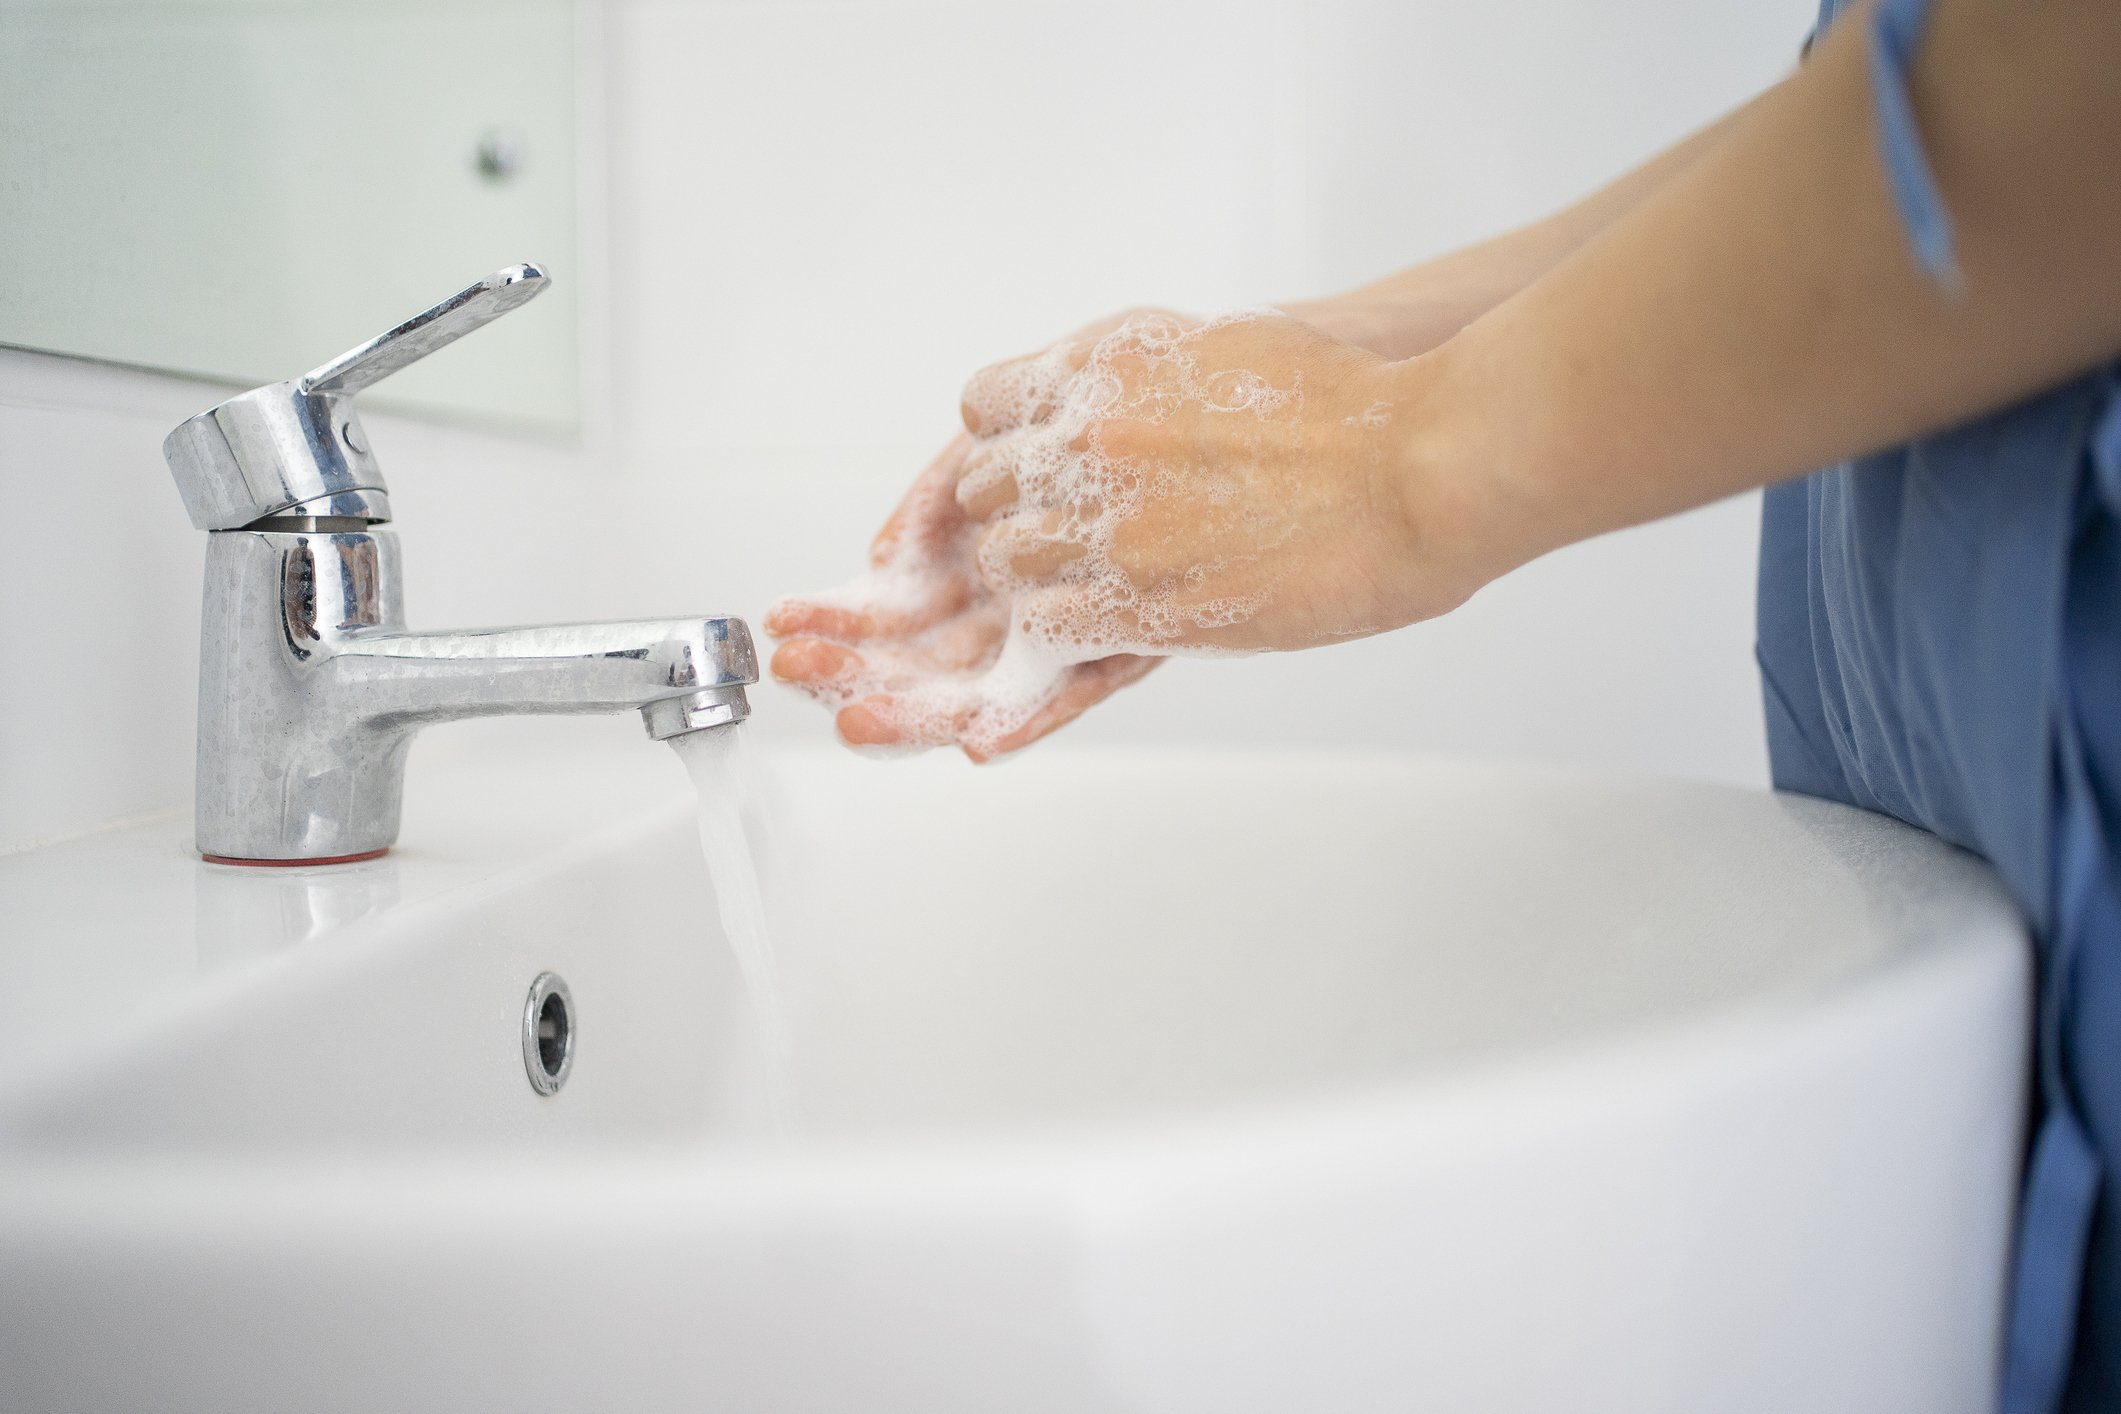 female Doctor teaching how to wash the hand with soap protect Covid-19   Photo   getty Images